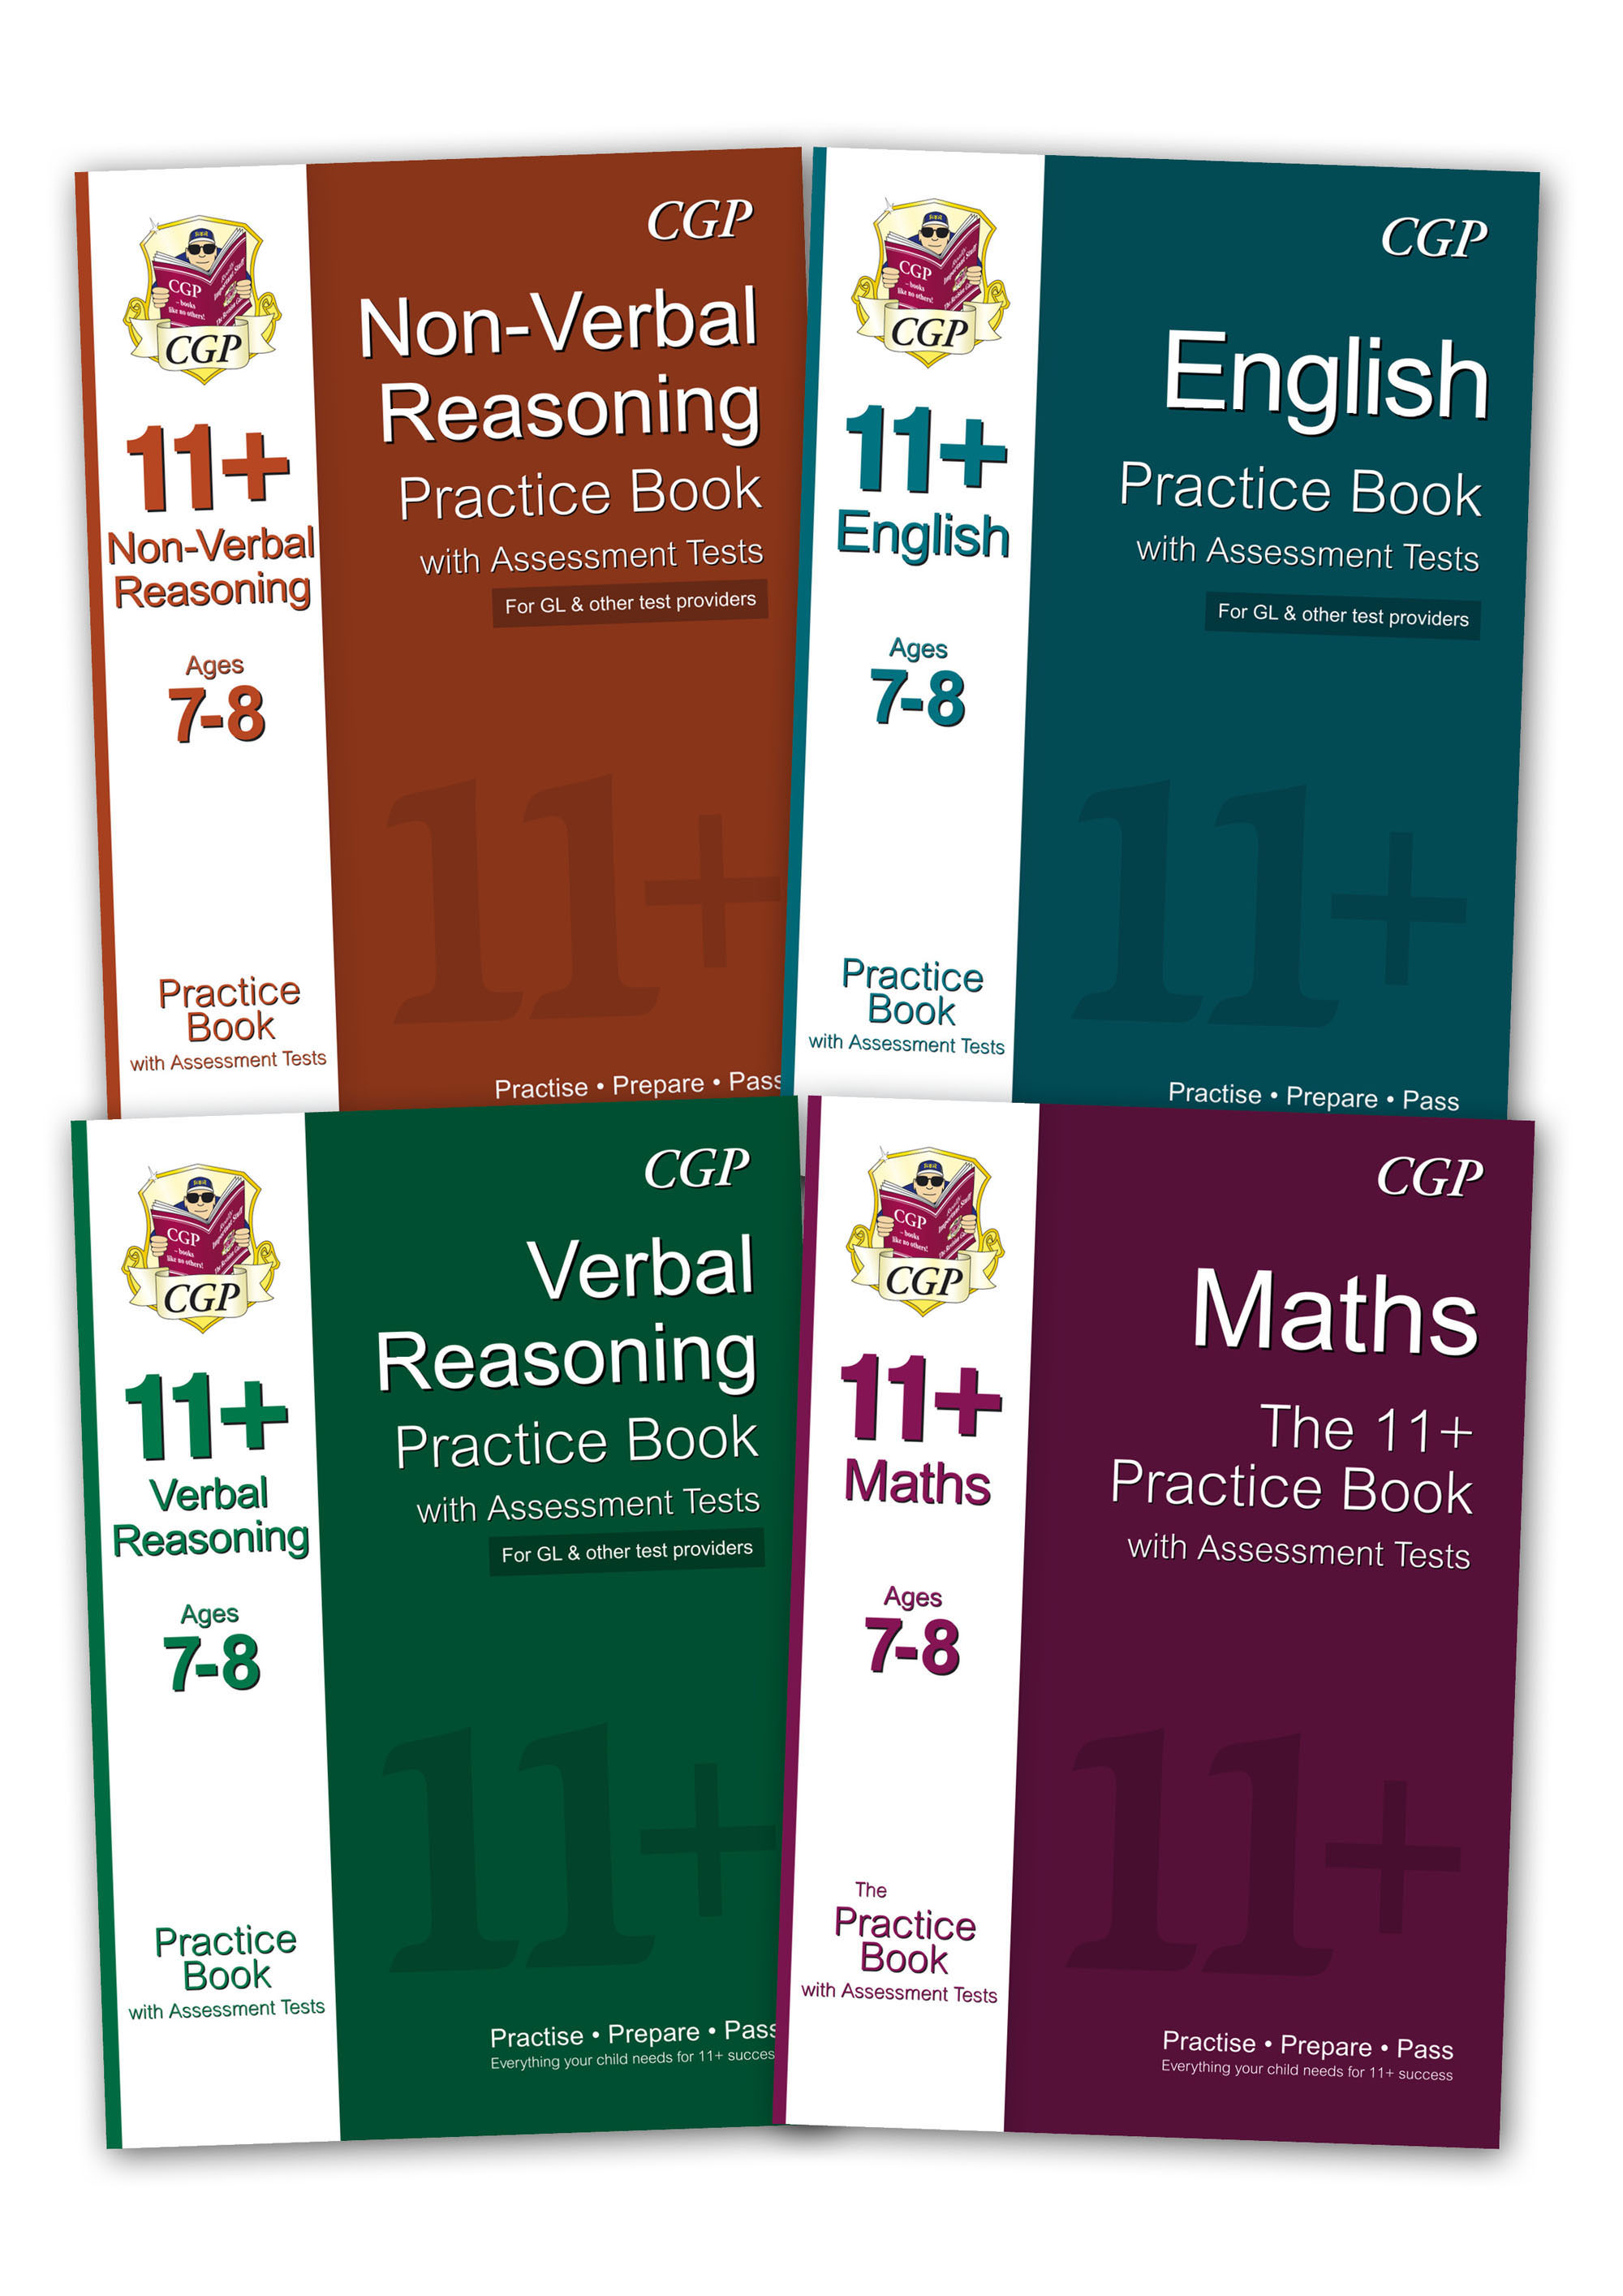 EL3BE1 - GL & Other Test Providers 11+ Practice 4-book Bundle - for Ages 7-8